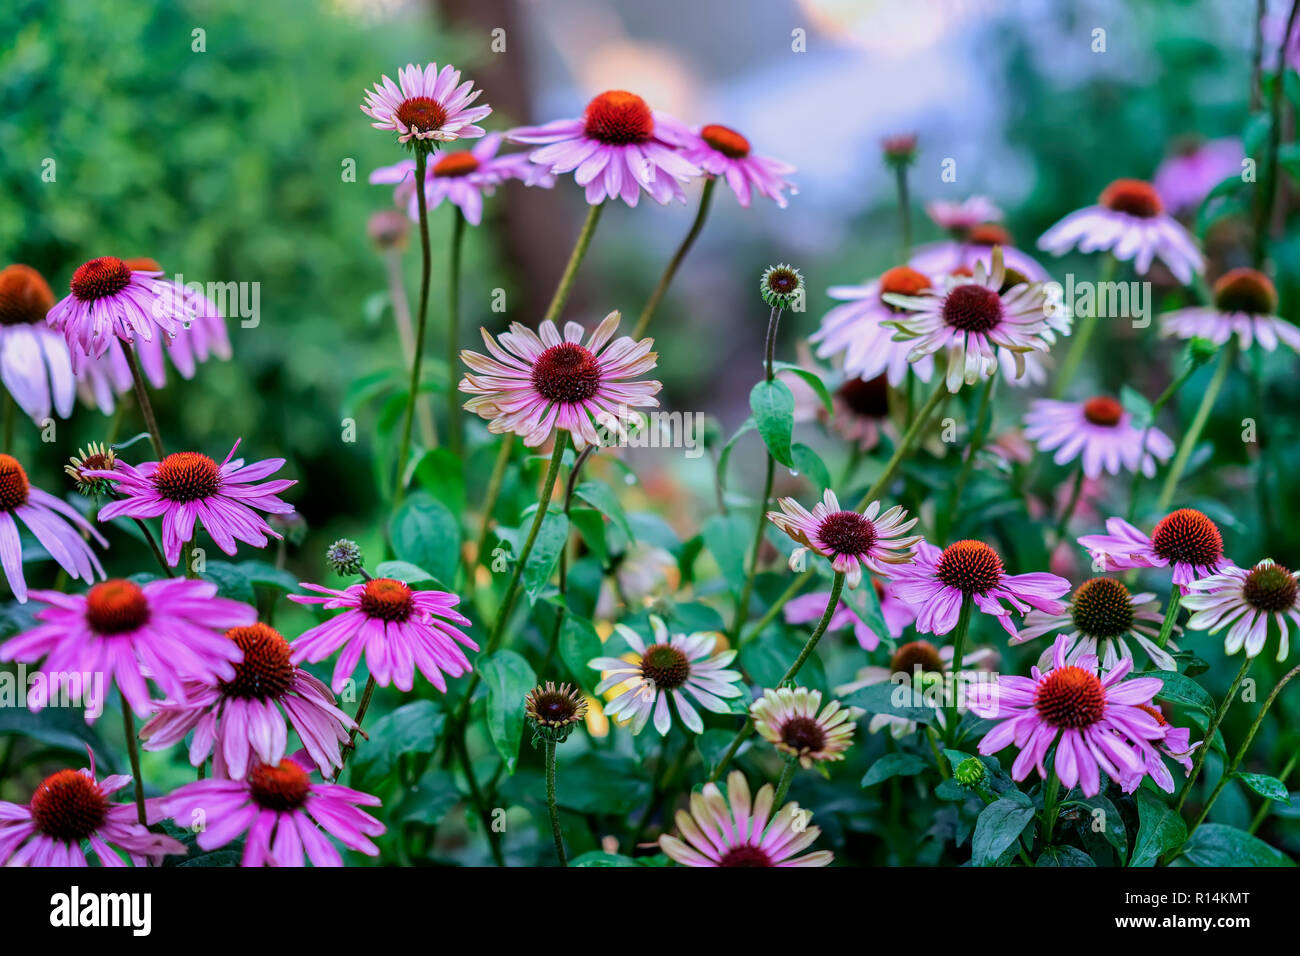 Bright picturesque blooming street flowerbed in purple shades. Beautiful seasonal floral background for different topics - Stock Image